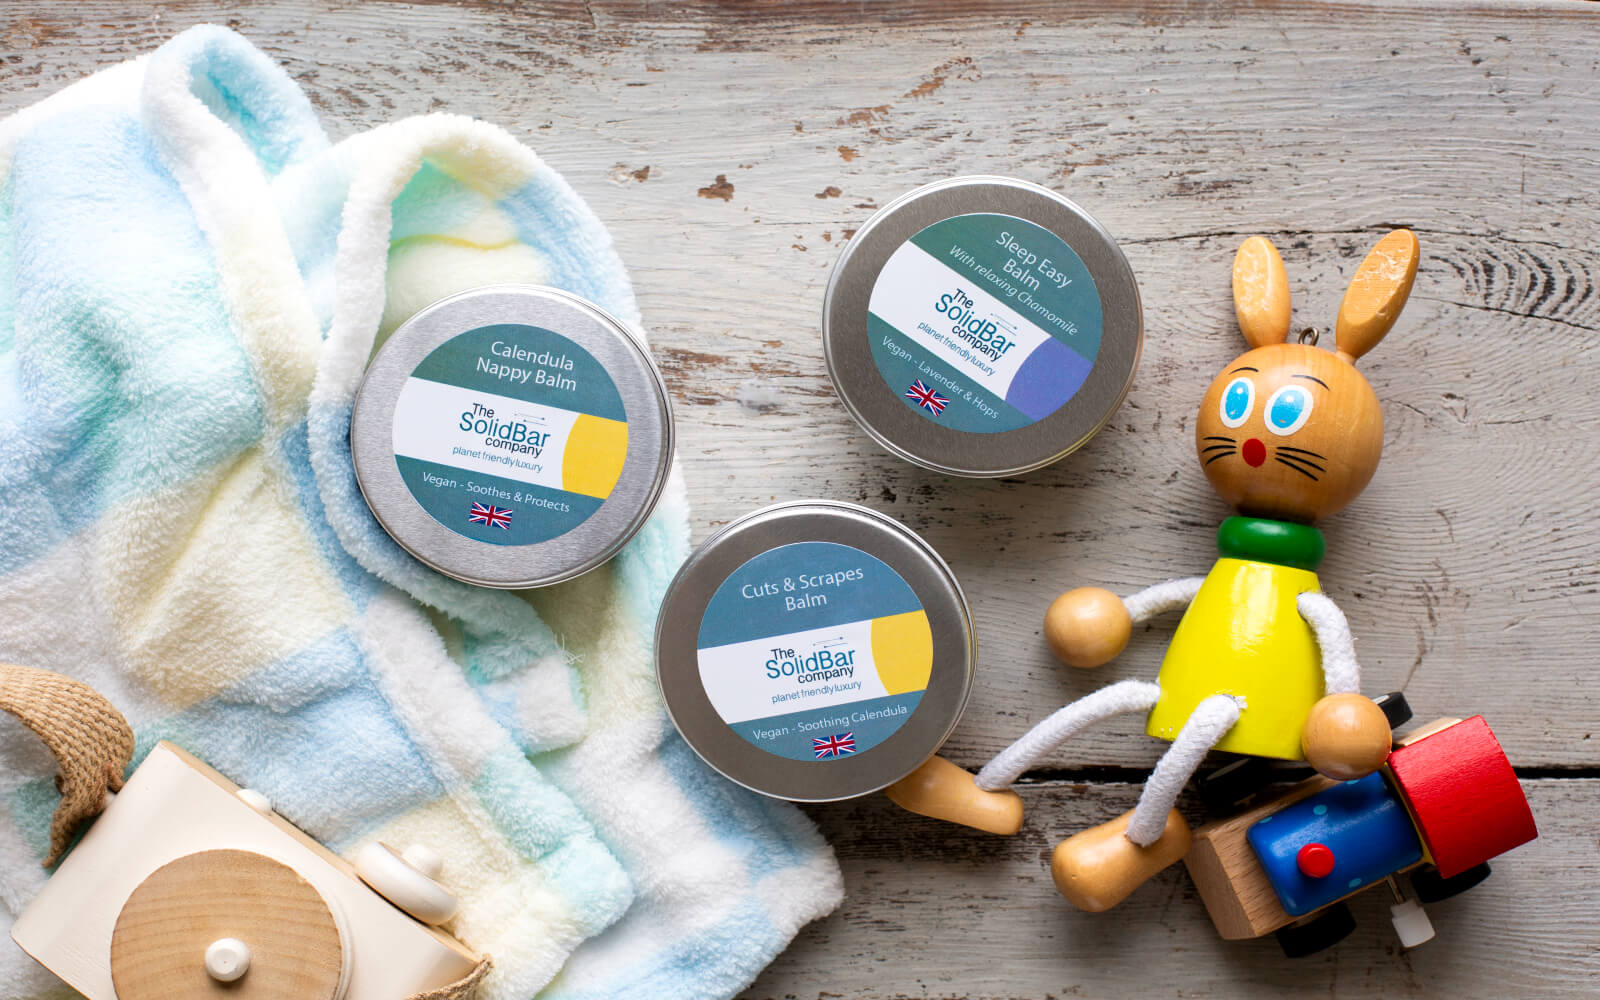 Nappy balm, sleep easy balm cuts and scrapes balm